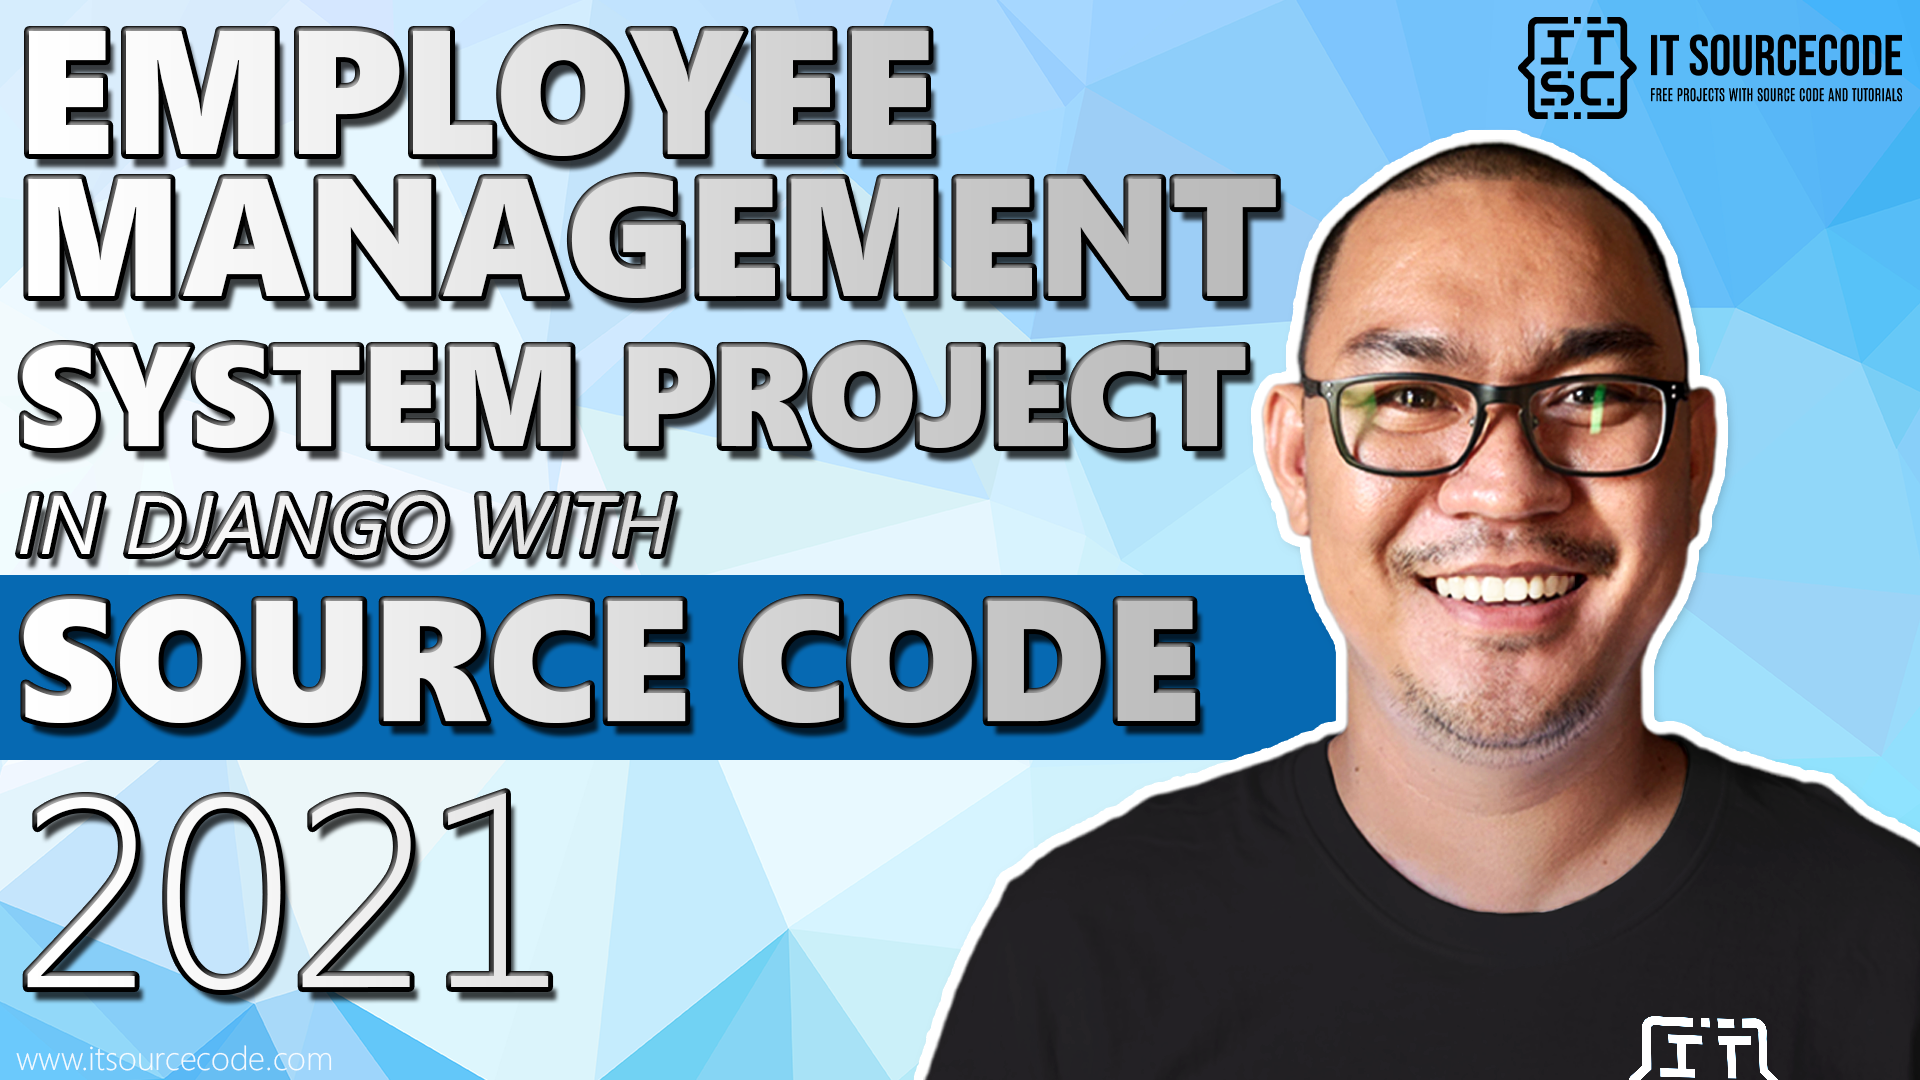 Employee management system project in django